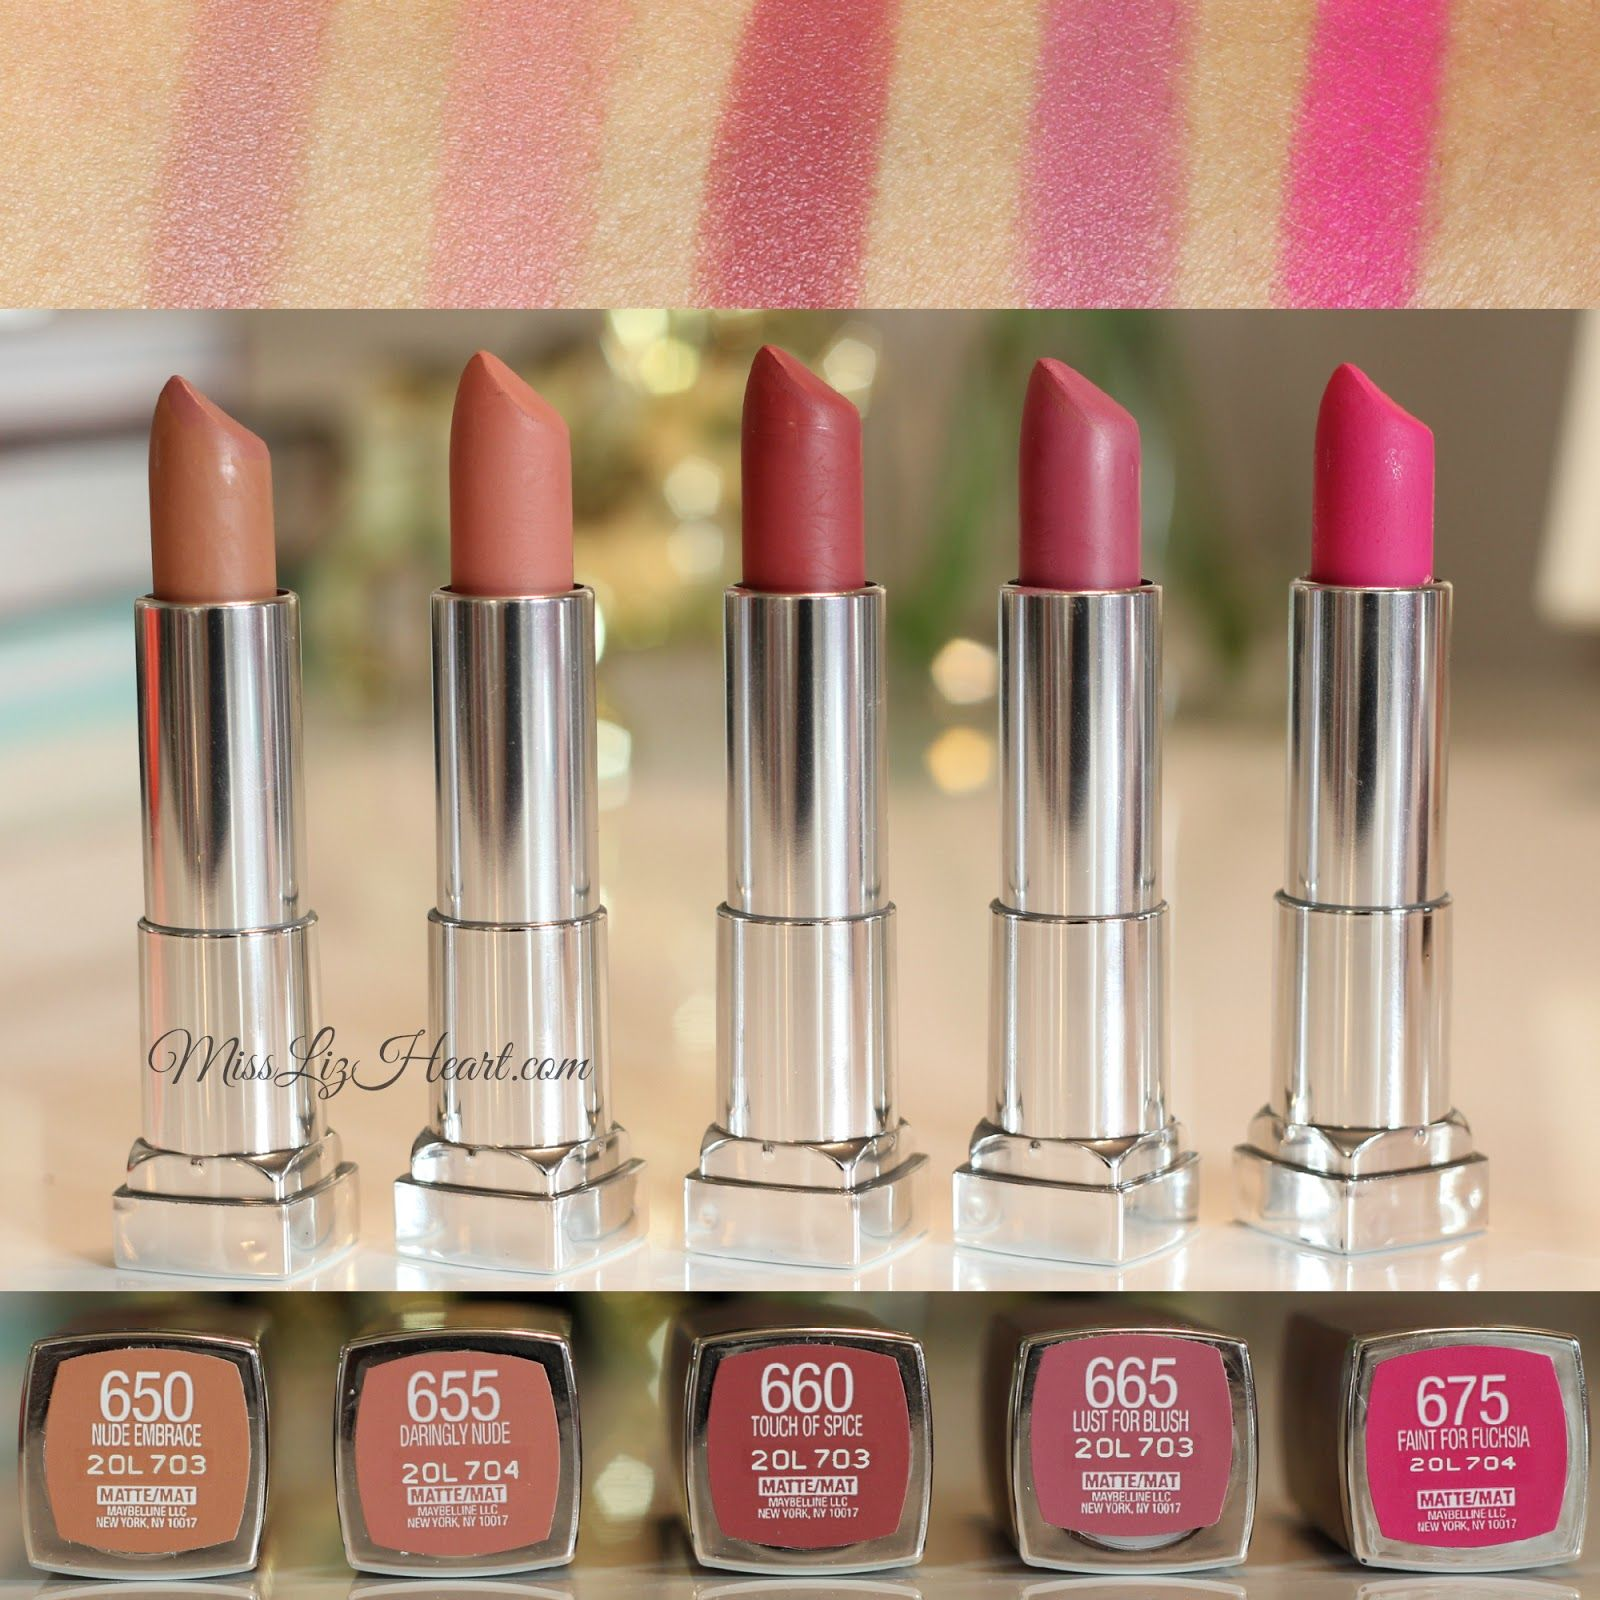 12 Sensational Schemes That Are: New Maybelline Color Sensational Creamy Matte Lipstick